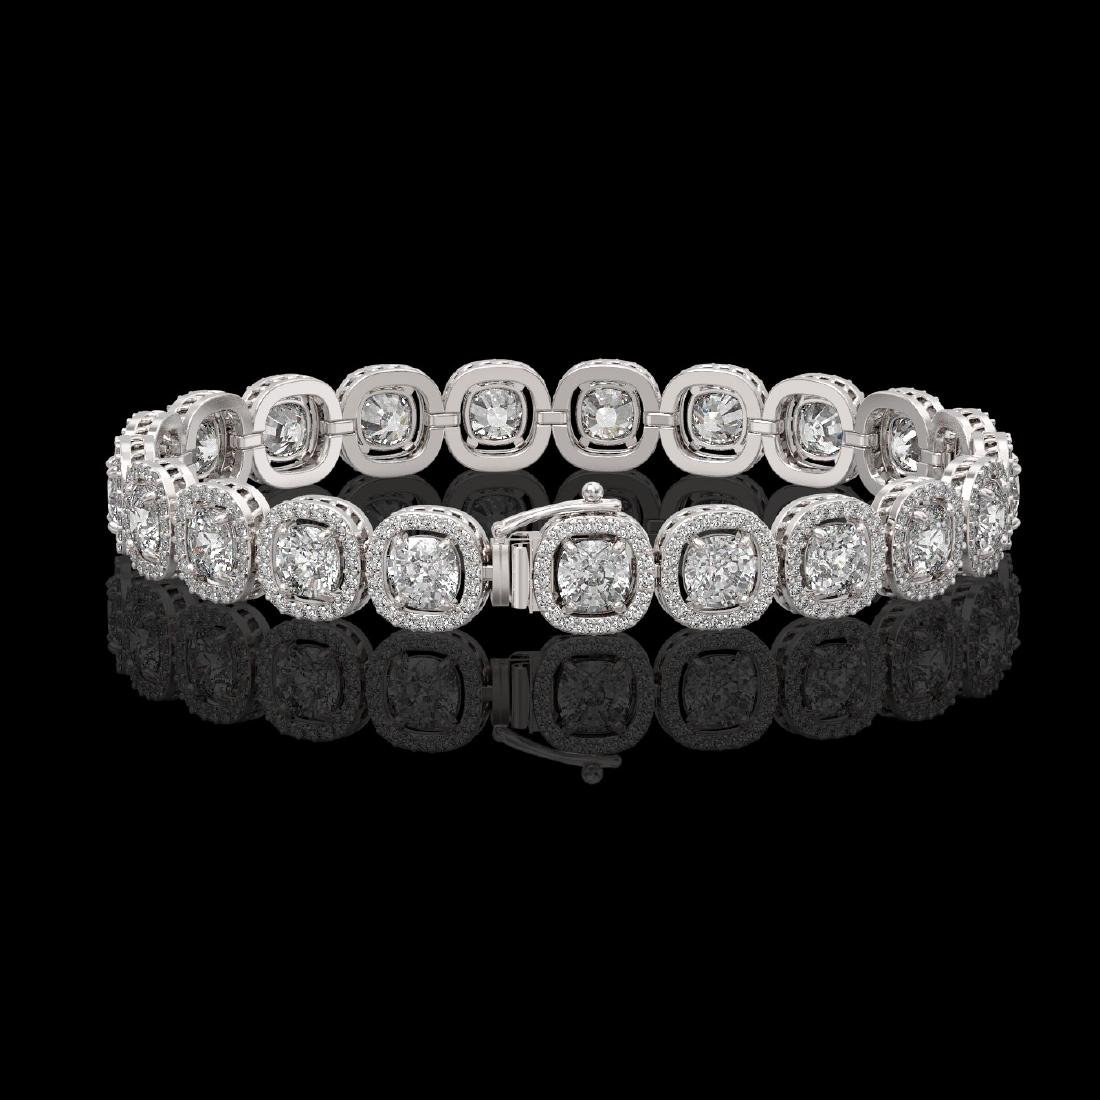 14.41 CTW Cushion Diamond Designer Bracelet 18K White - 2